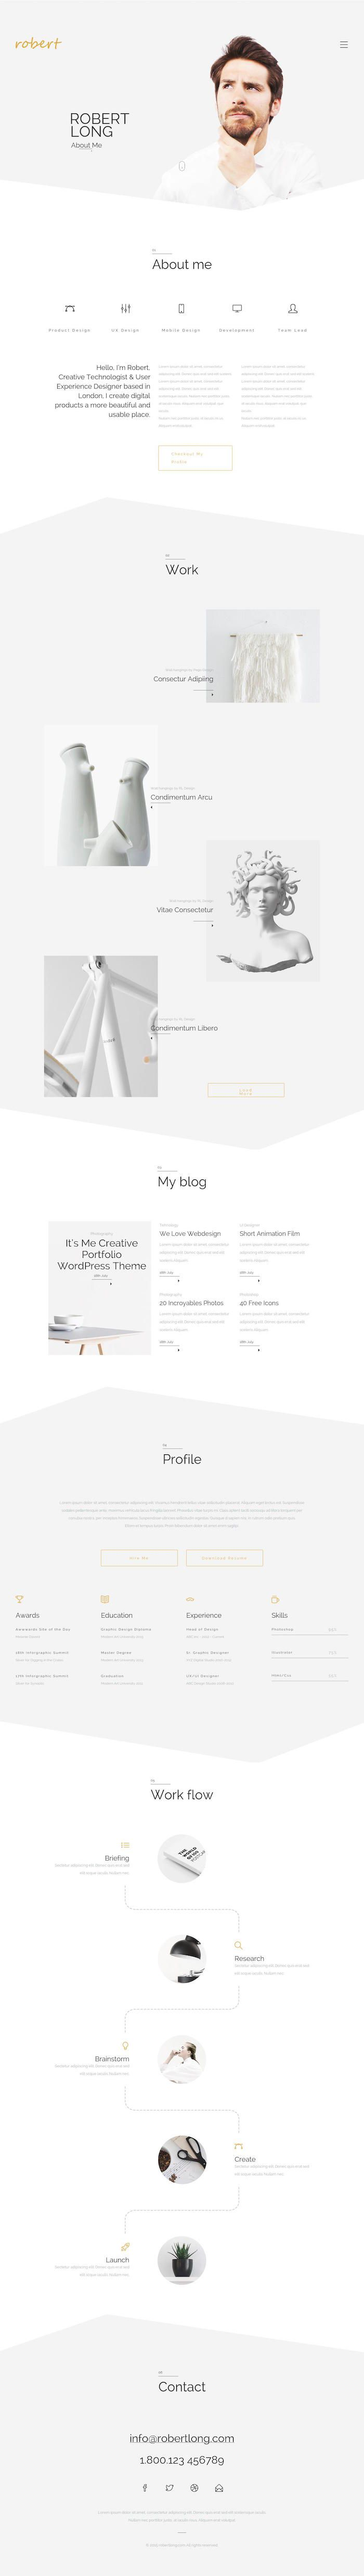 It's Me - Creative Portfolio WordPress Theme